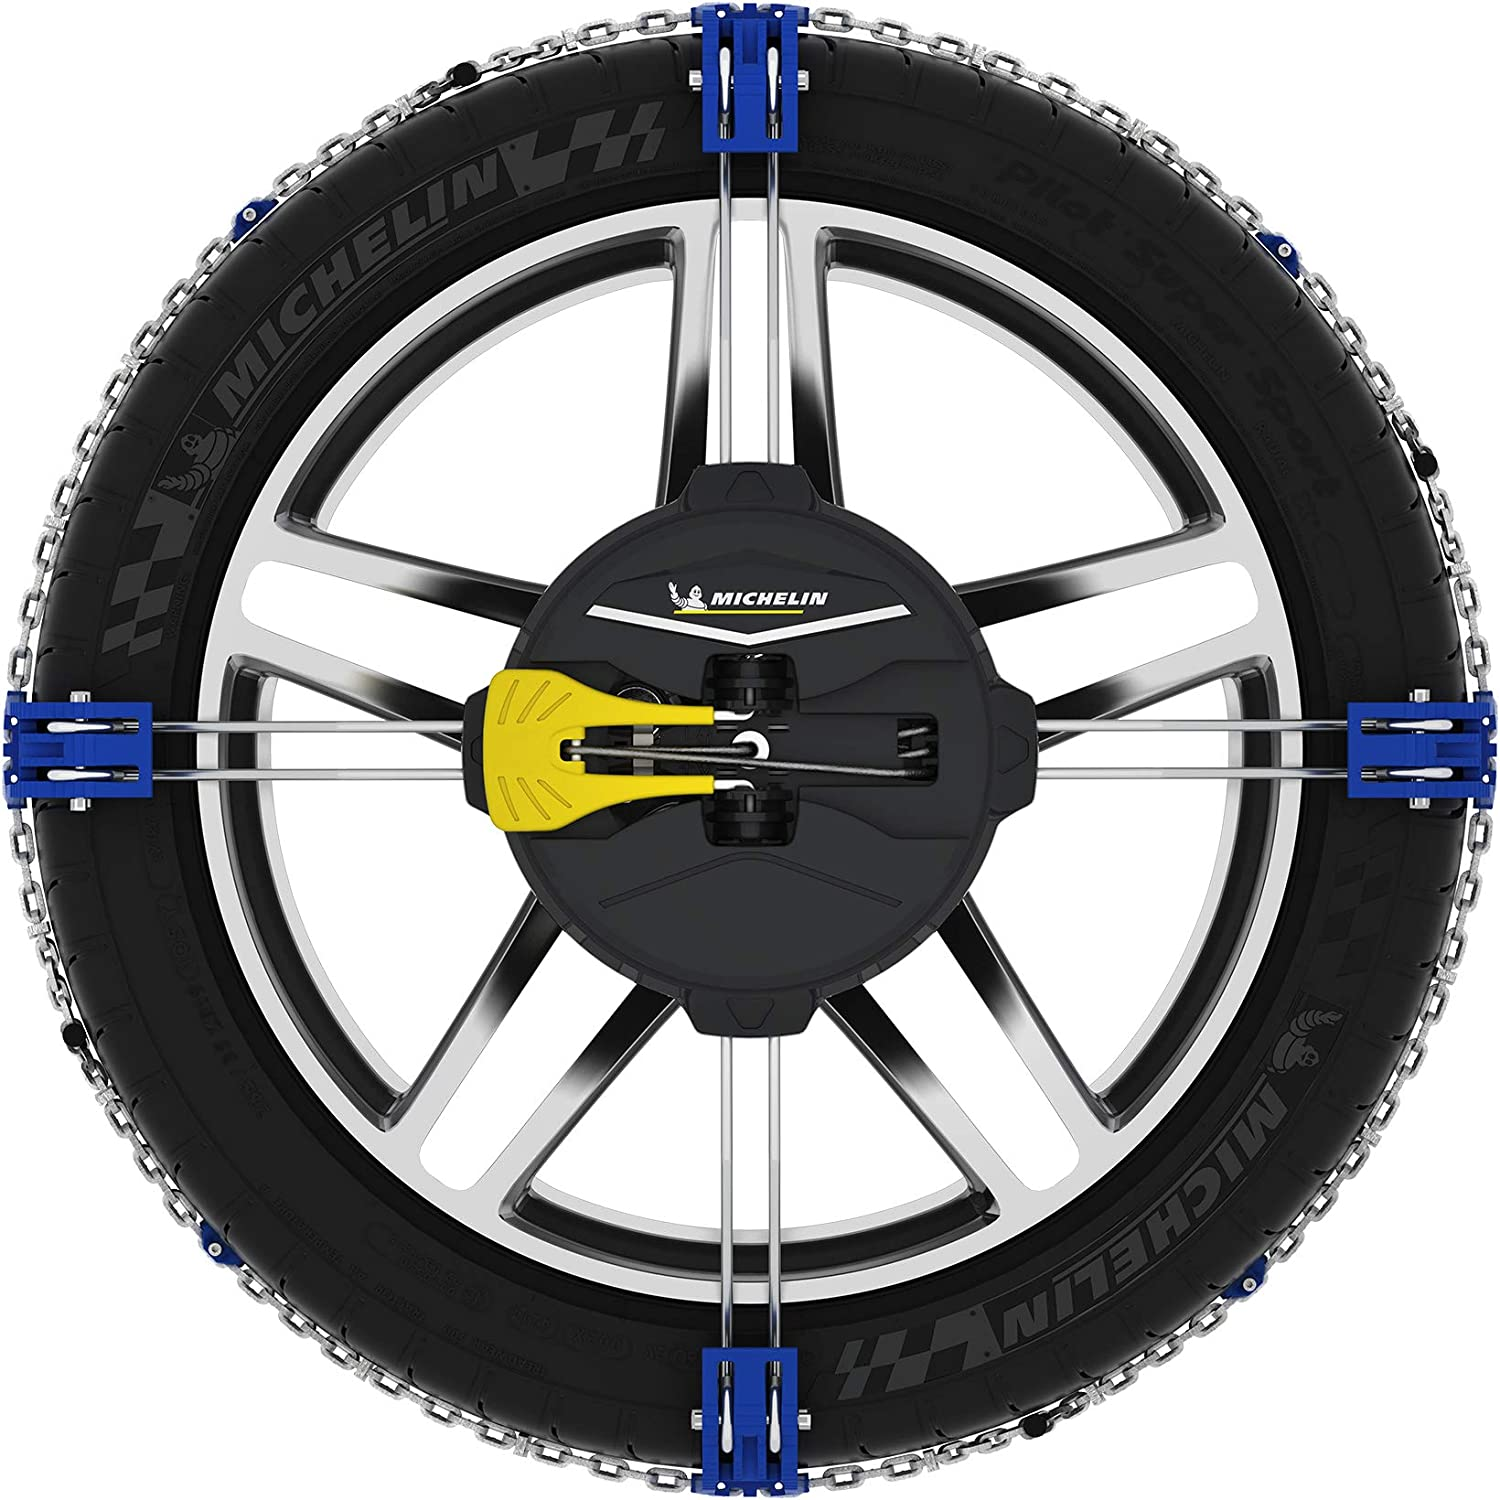 MICHELIN Fast Grip Chaines /à neige frontales N/°110